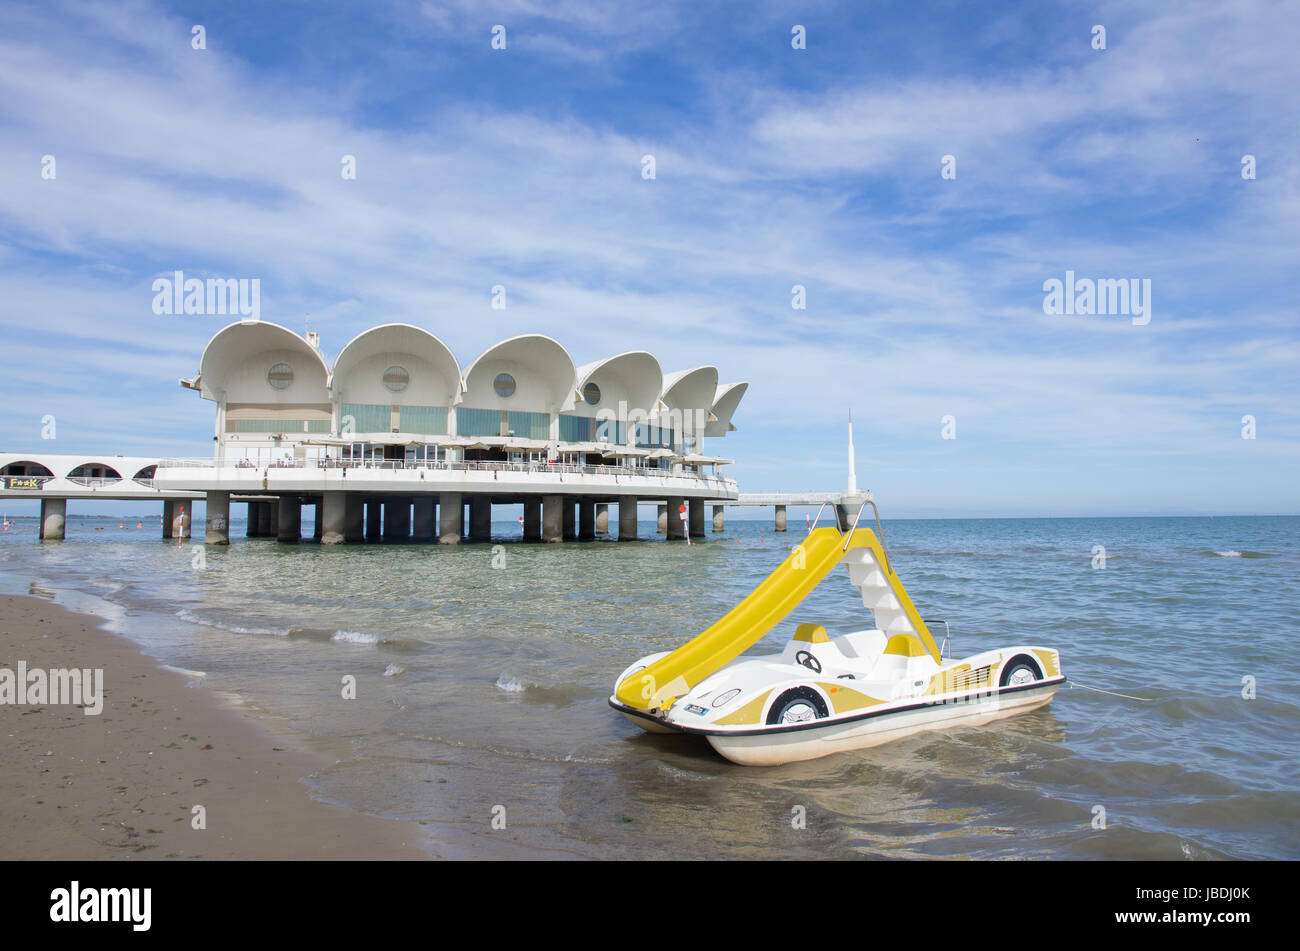 The Terrazza a mare, a symbol of the town of Lignano Sabbiadoro ...